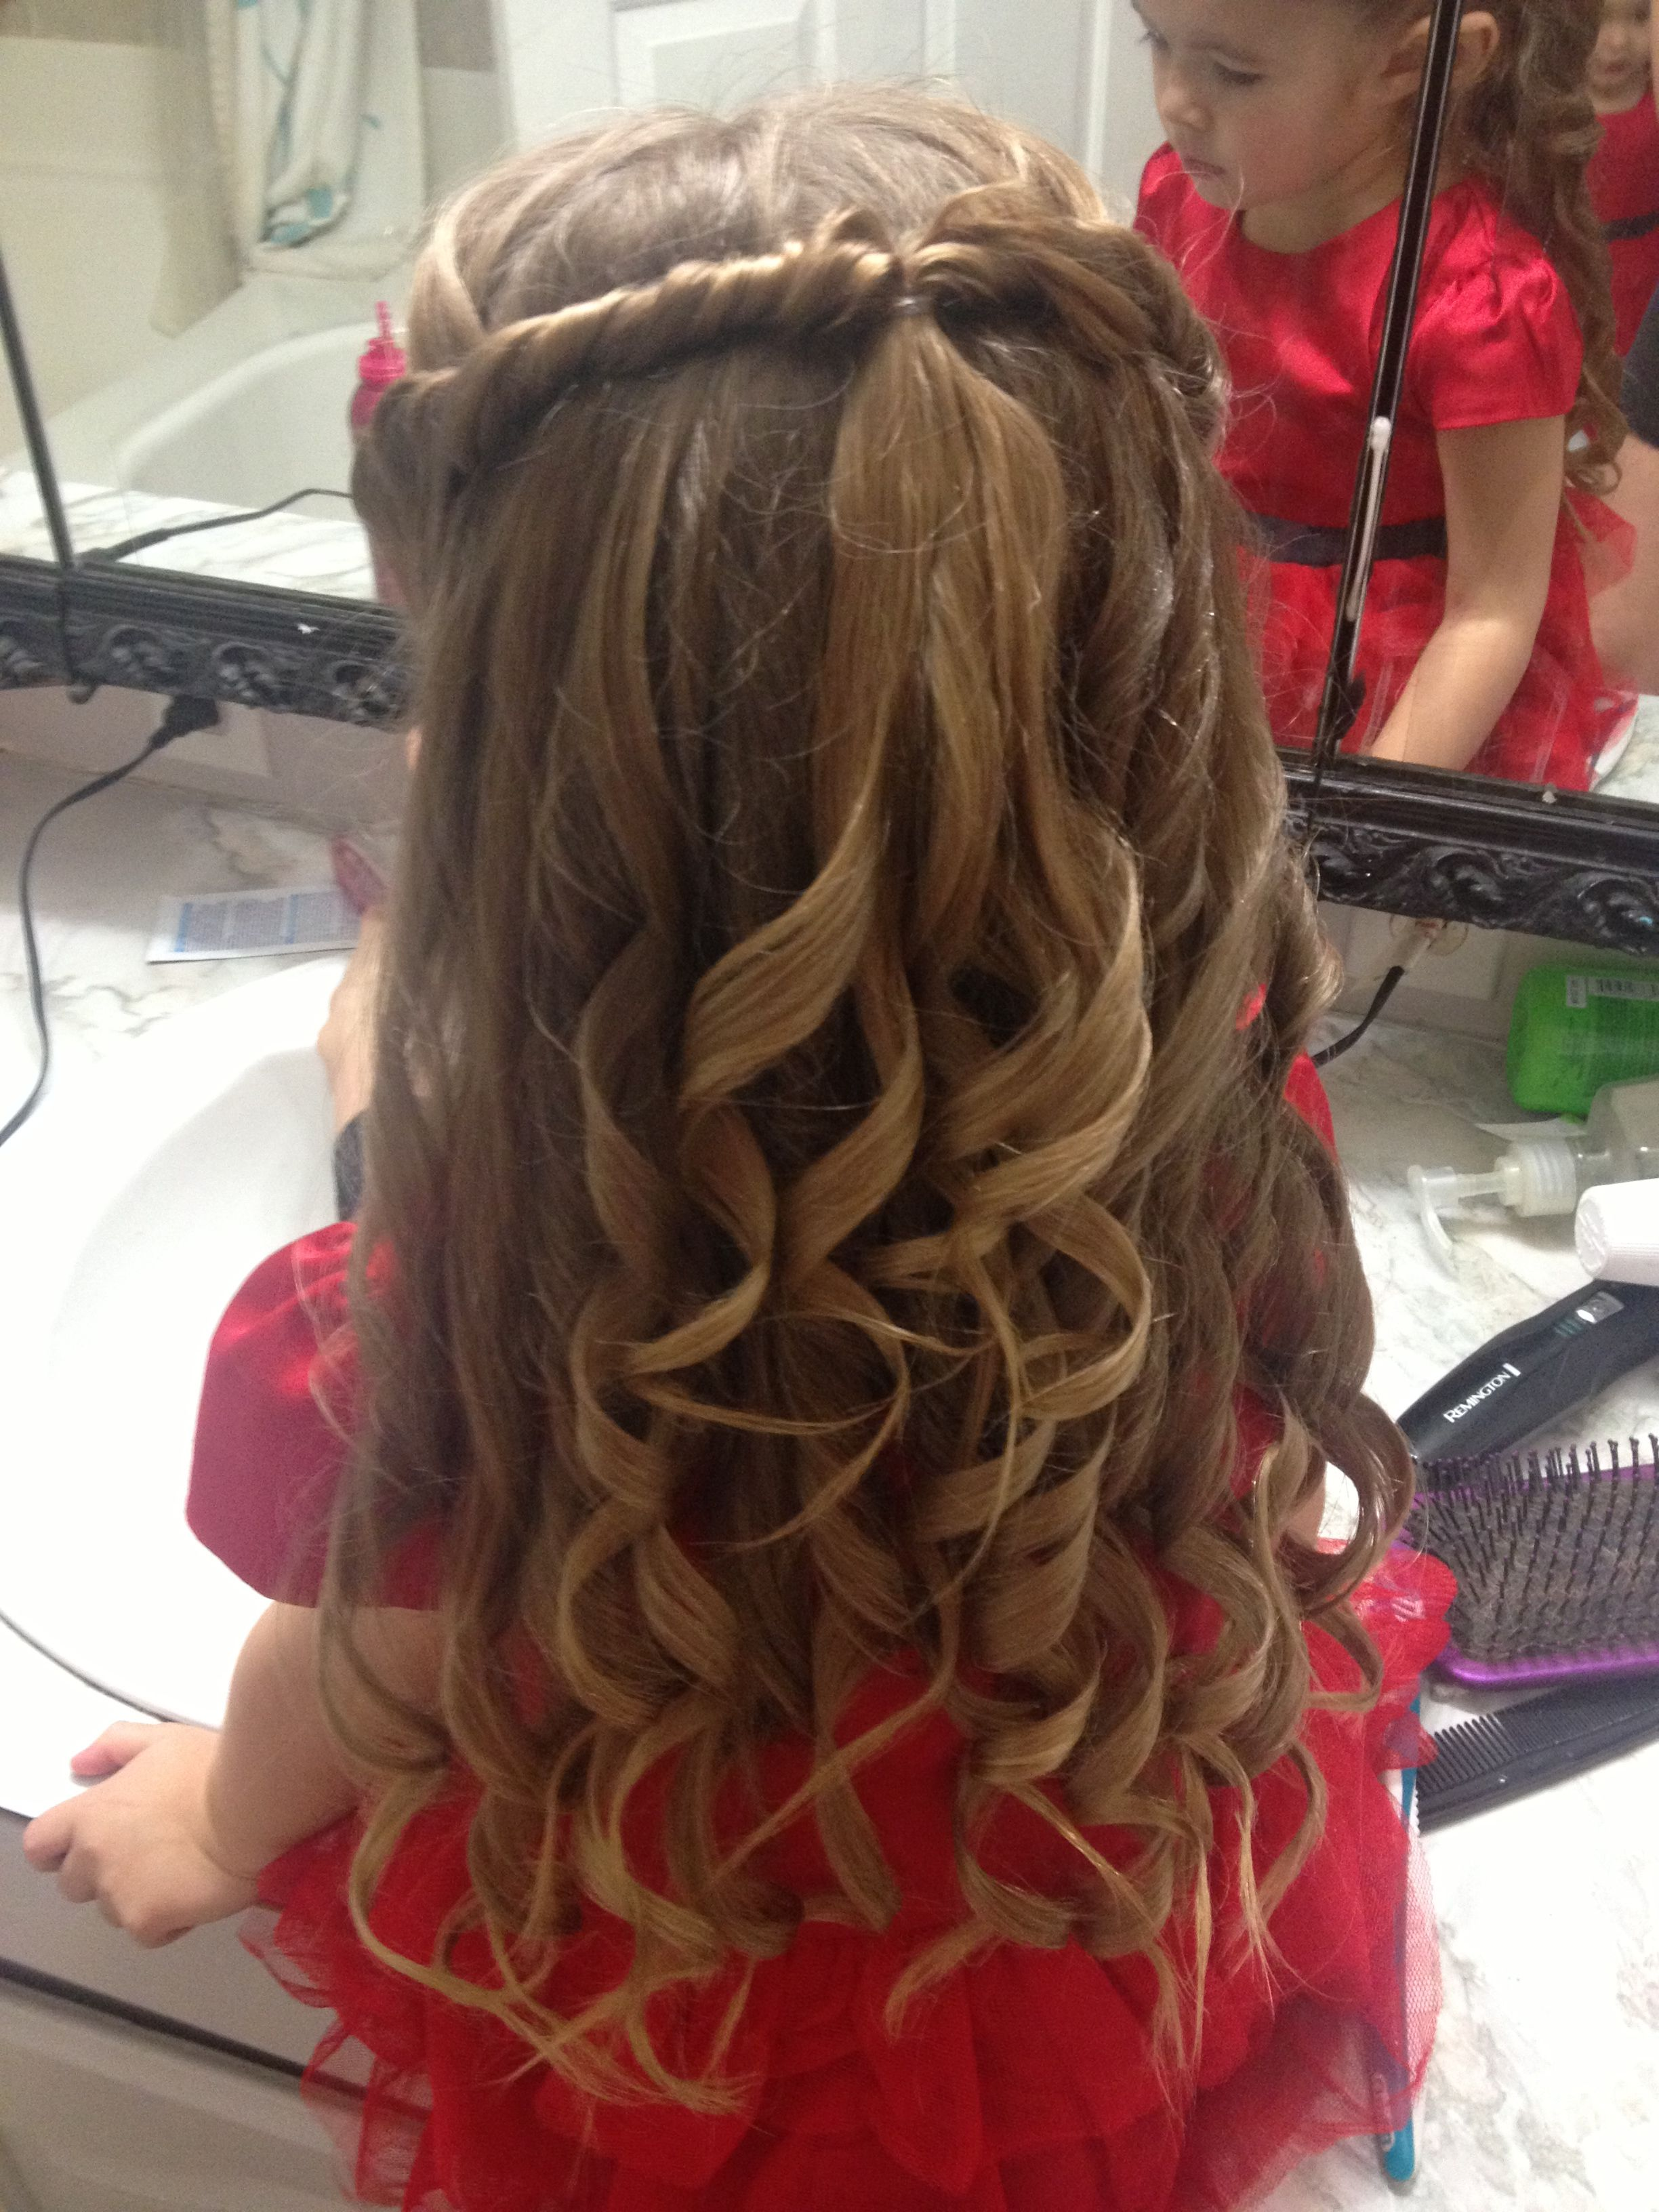 Cute little girls hair style for a special occasion toddler